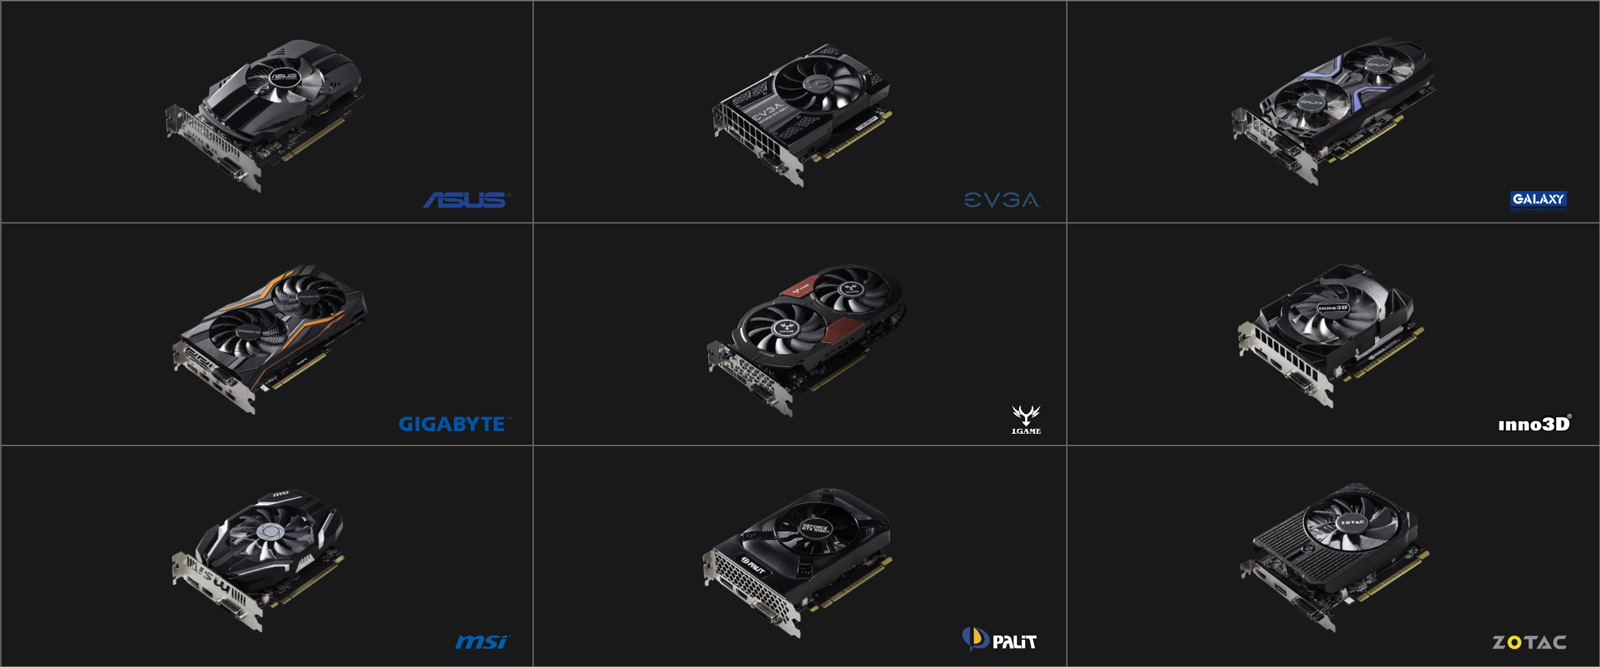 Gtx 1050 Ti Mining Crypto Blog Inno 3d 1050ti 4gb Ddr5 Compact There Will Be No Reference Design Version Of The And Even Though Nivida Is Releasing Some Images With A Gpu That Apparently Seems